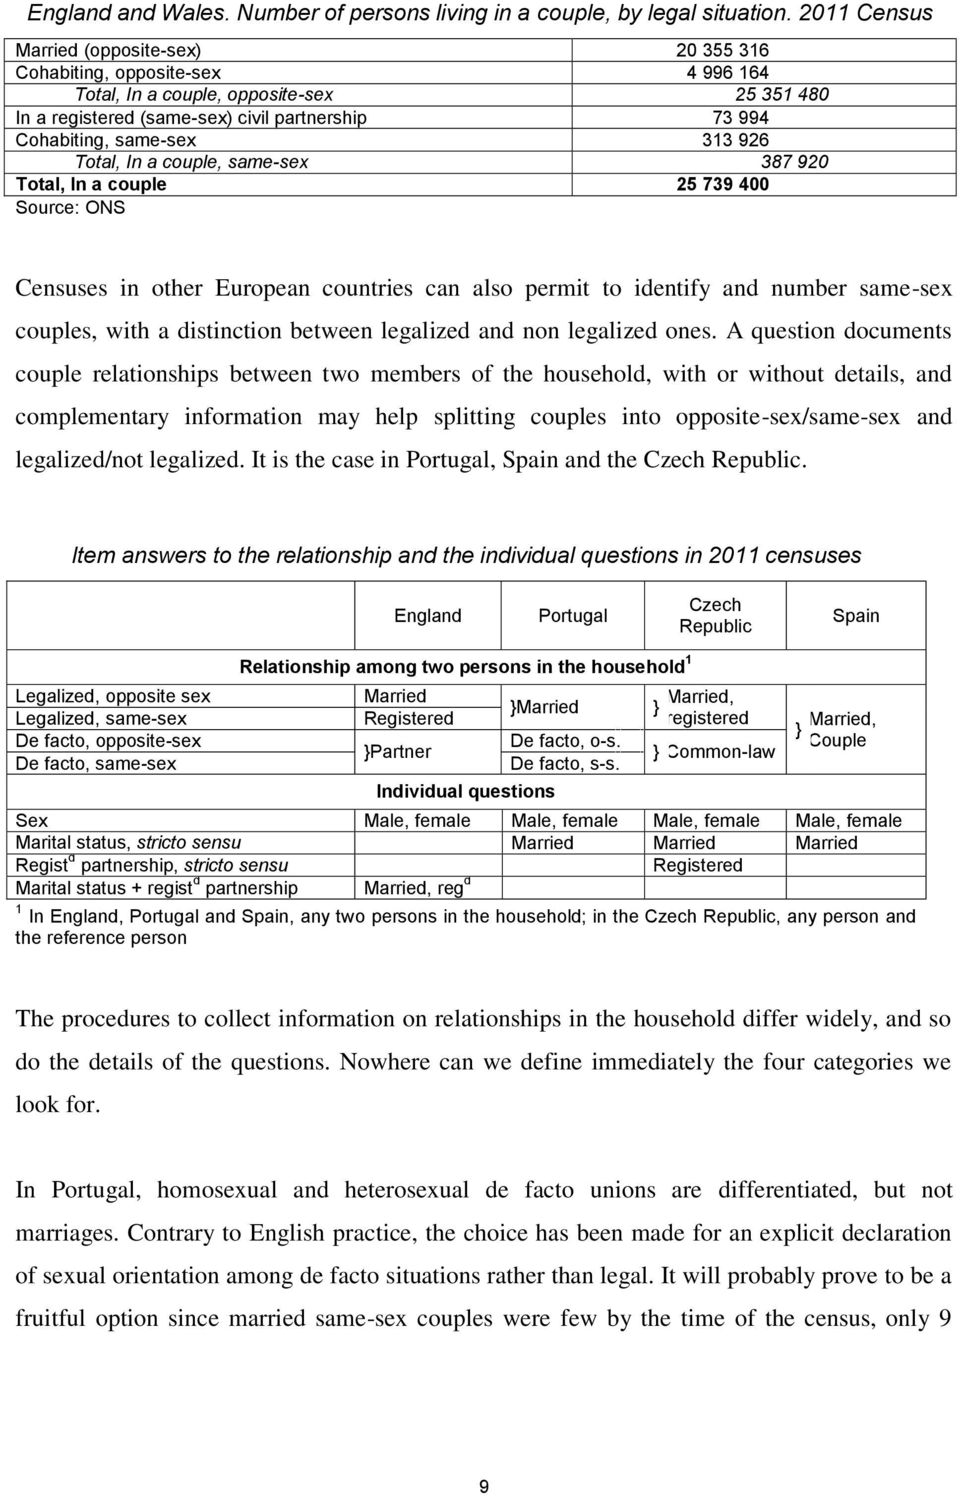 313 926 Total, In a couple, same-sex 387 920 Total, In a couple 25 739 400 Source: ONS Censuses in other European countries can also permit to identify and number same-sex couples, with a distinction